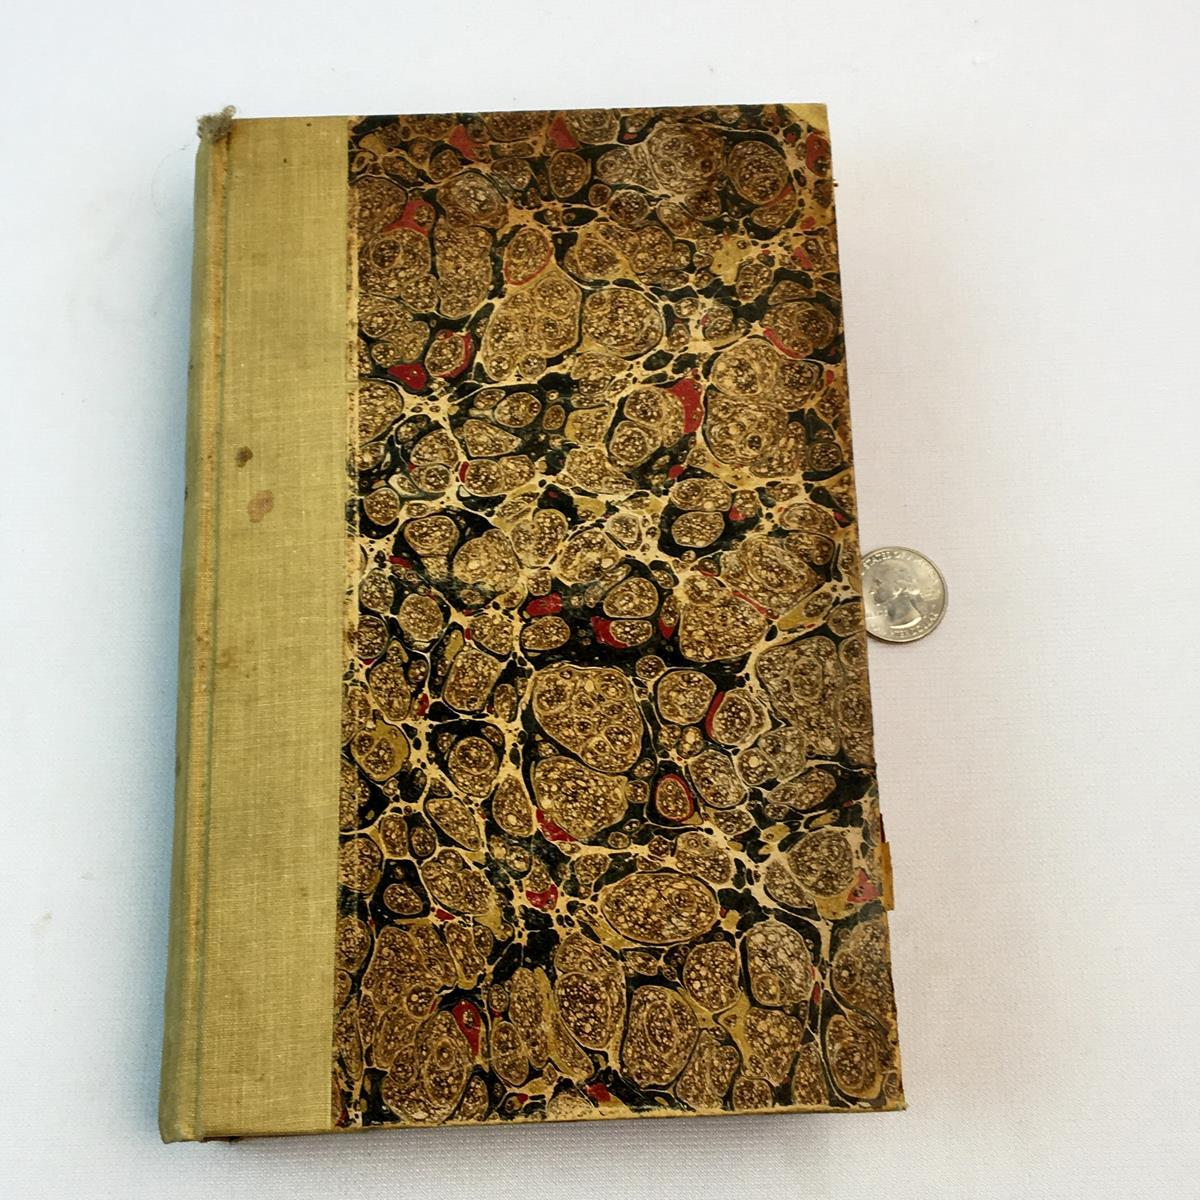 RARE 1810 The Journal of a Tour of the Hebrides, with Samuel Johnson, L.L.D by James Boswell no. 948